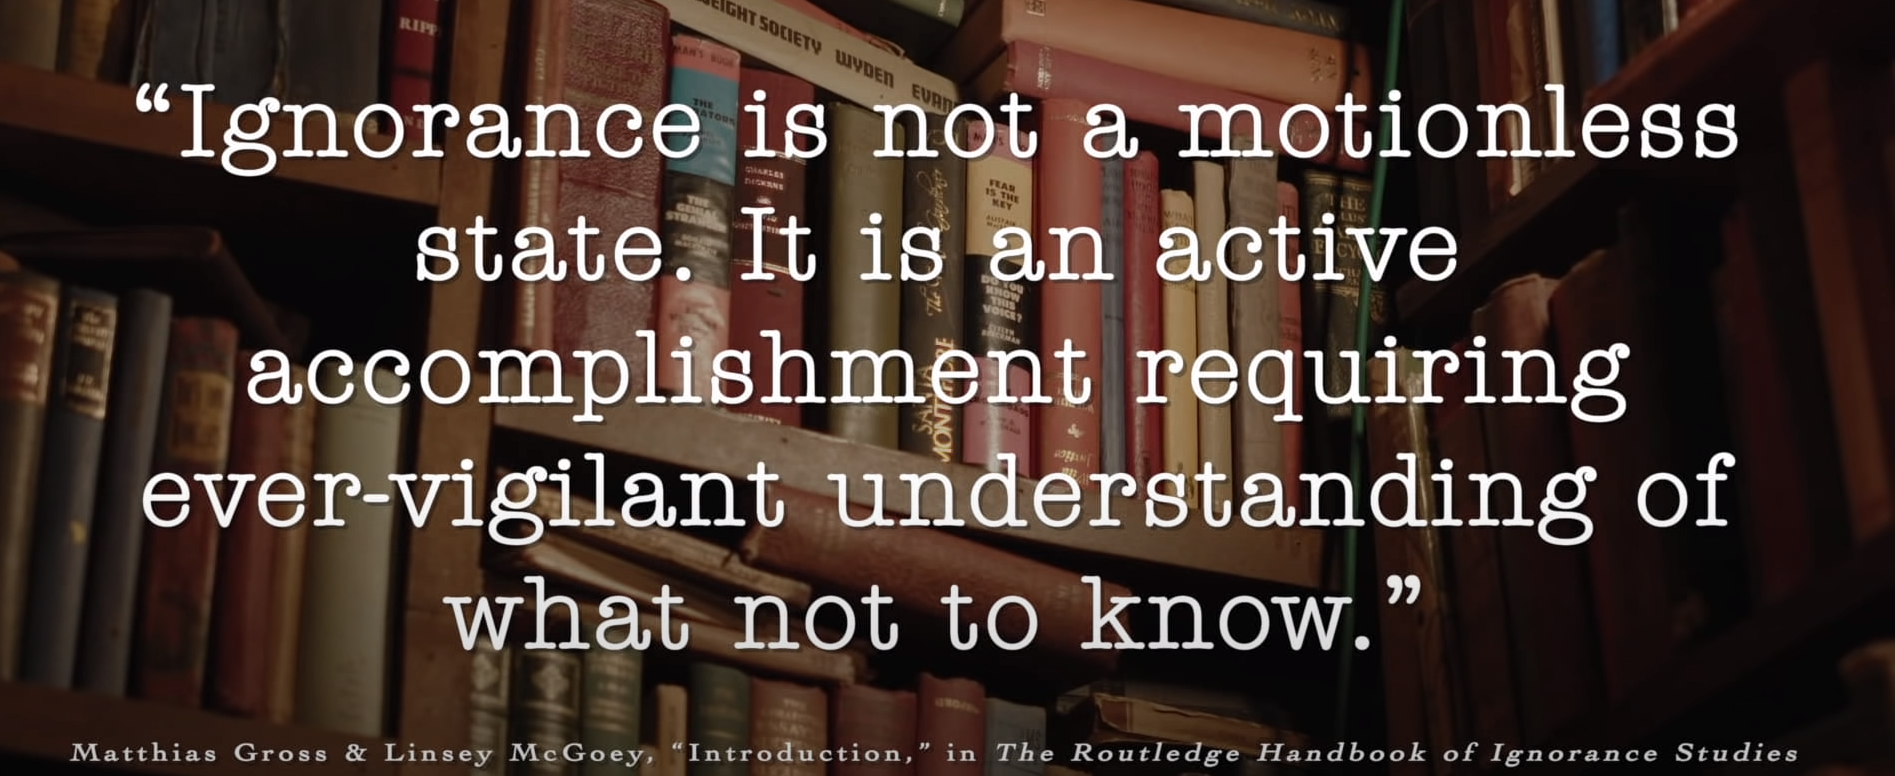 Ignorance is not a motionless state – Matthian Gross & Linsey MeGoey [1895 x 776]